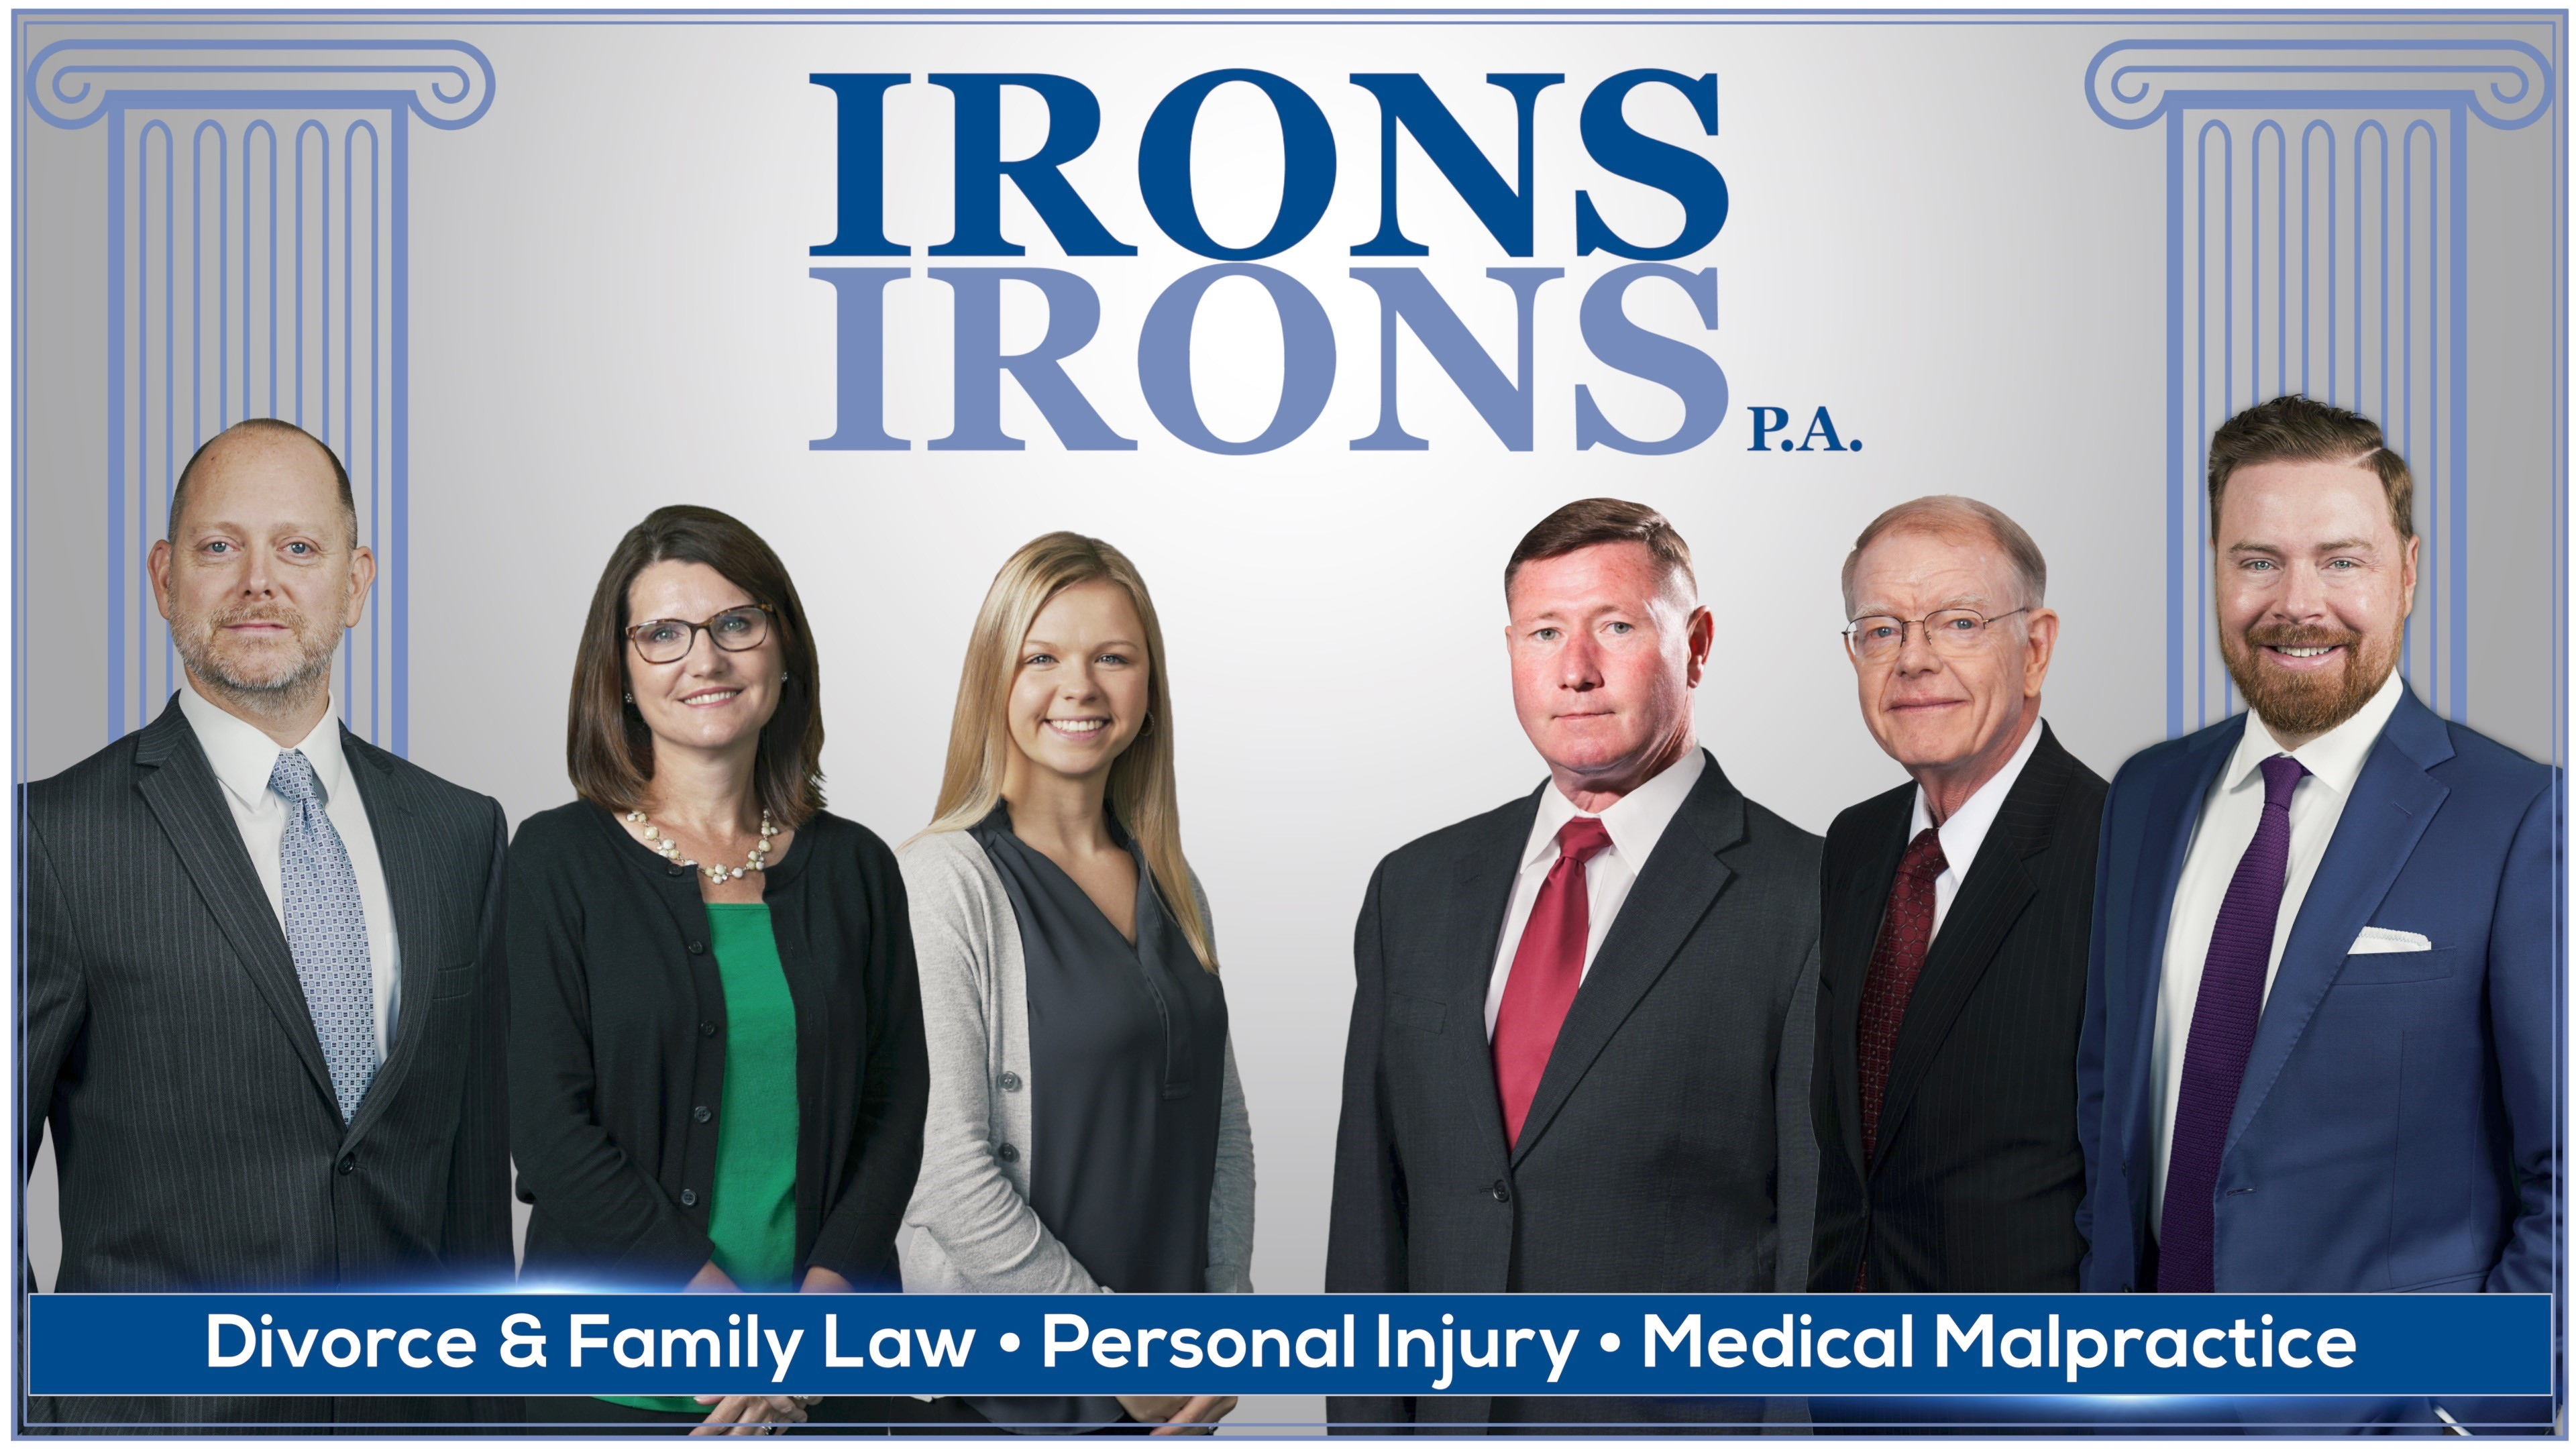 Irons & Irons P.A. reviews | Divorce & Family Law at 620 Lynndale Ct - Greenville NC